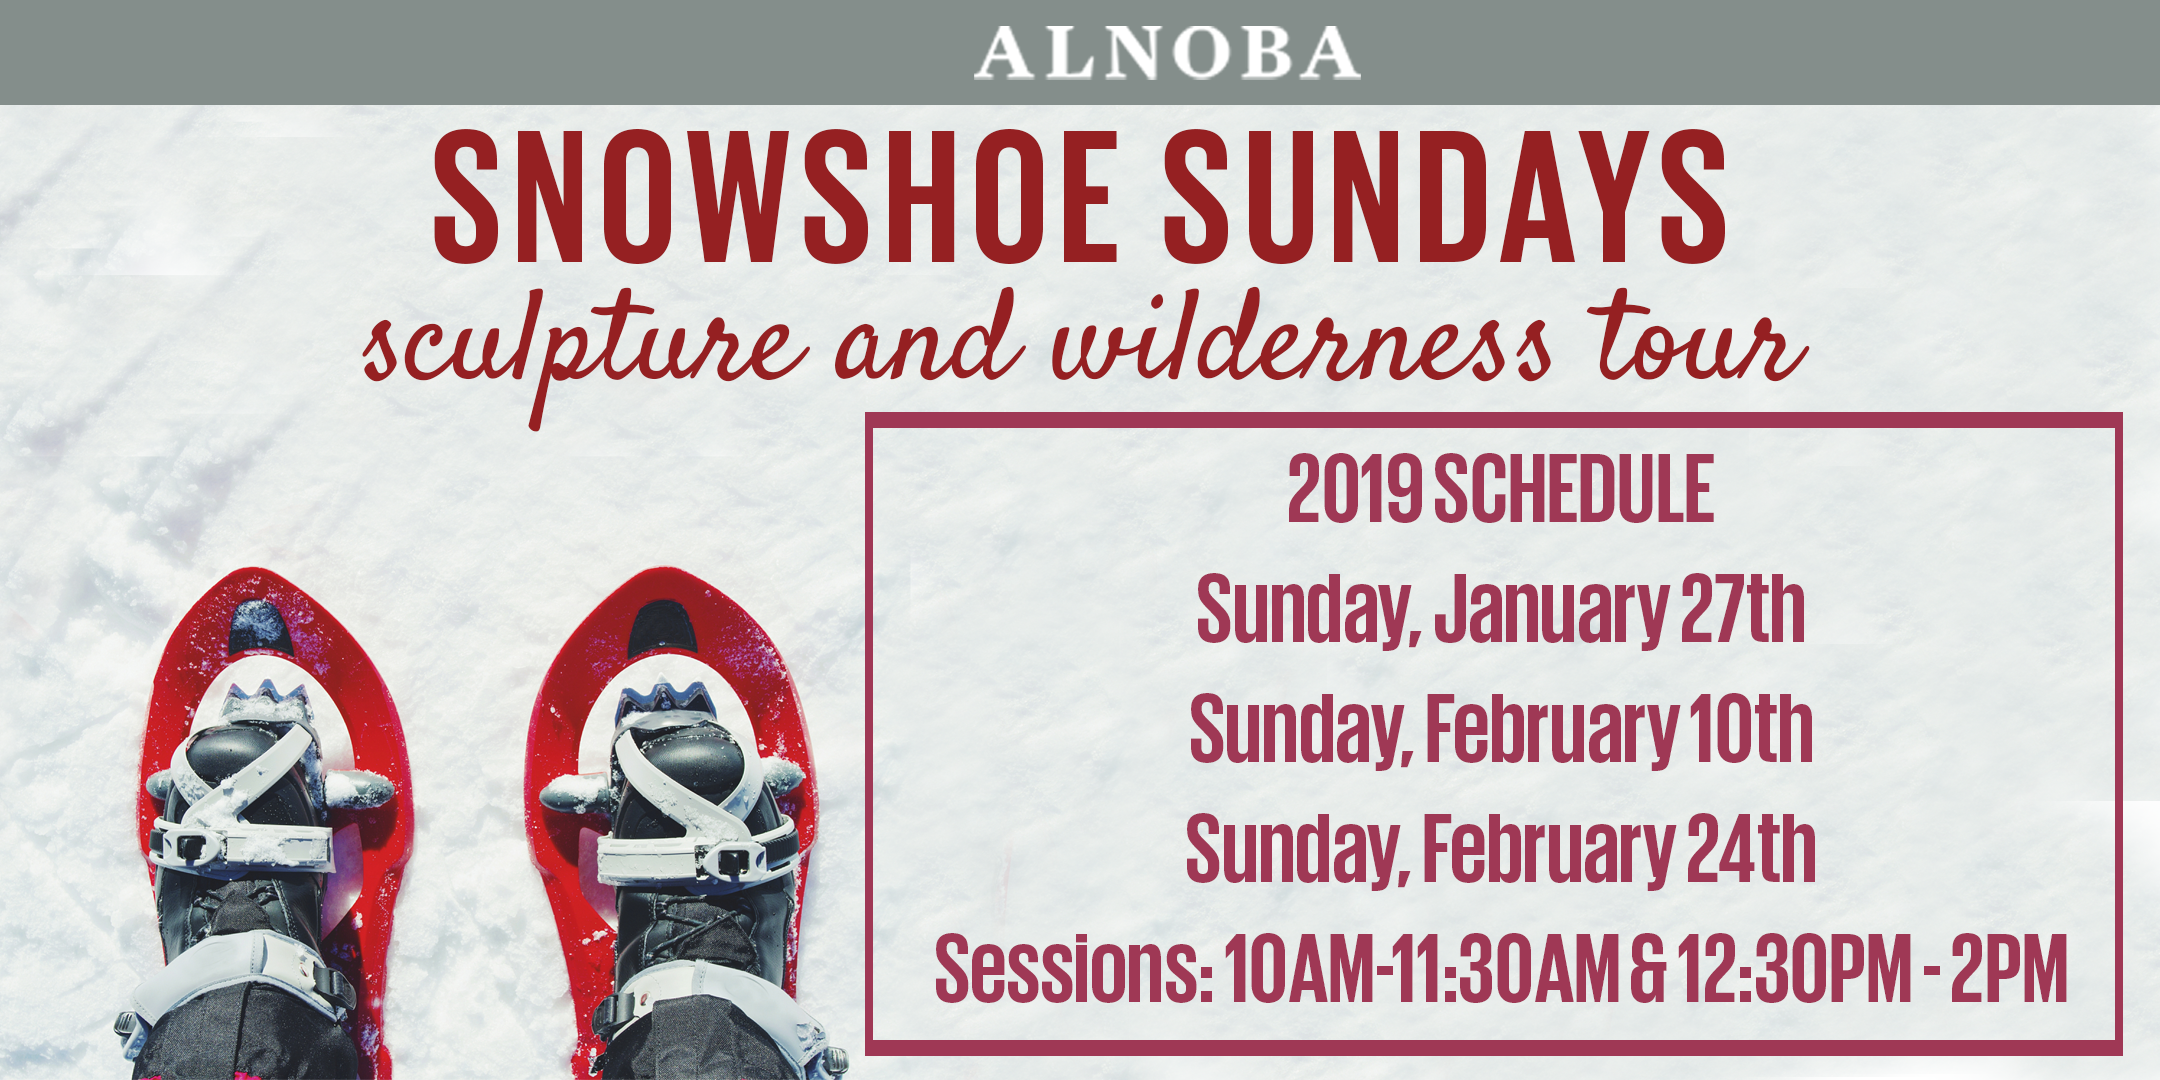 Snowshoe Sundays at Alnoba's Sculpture Park